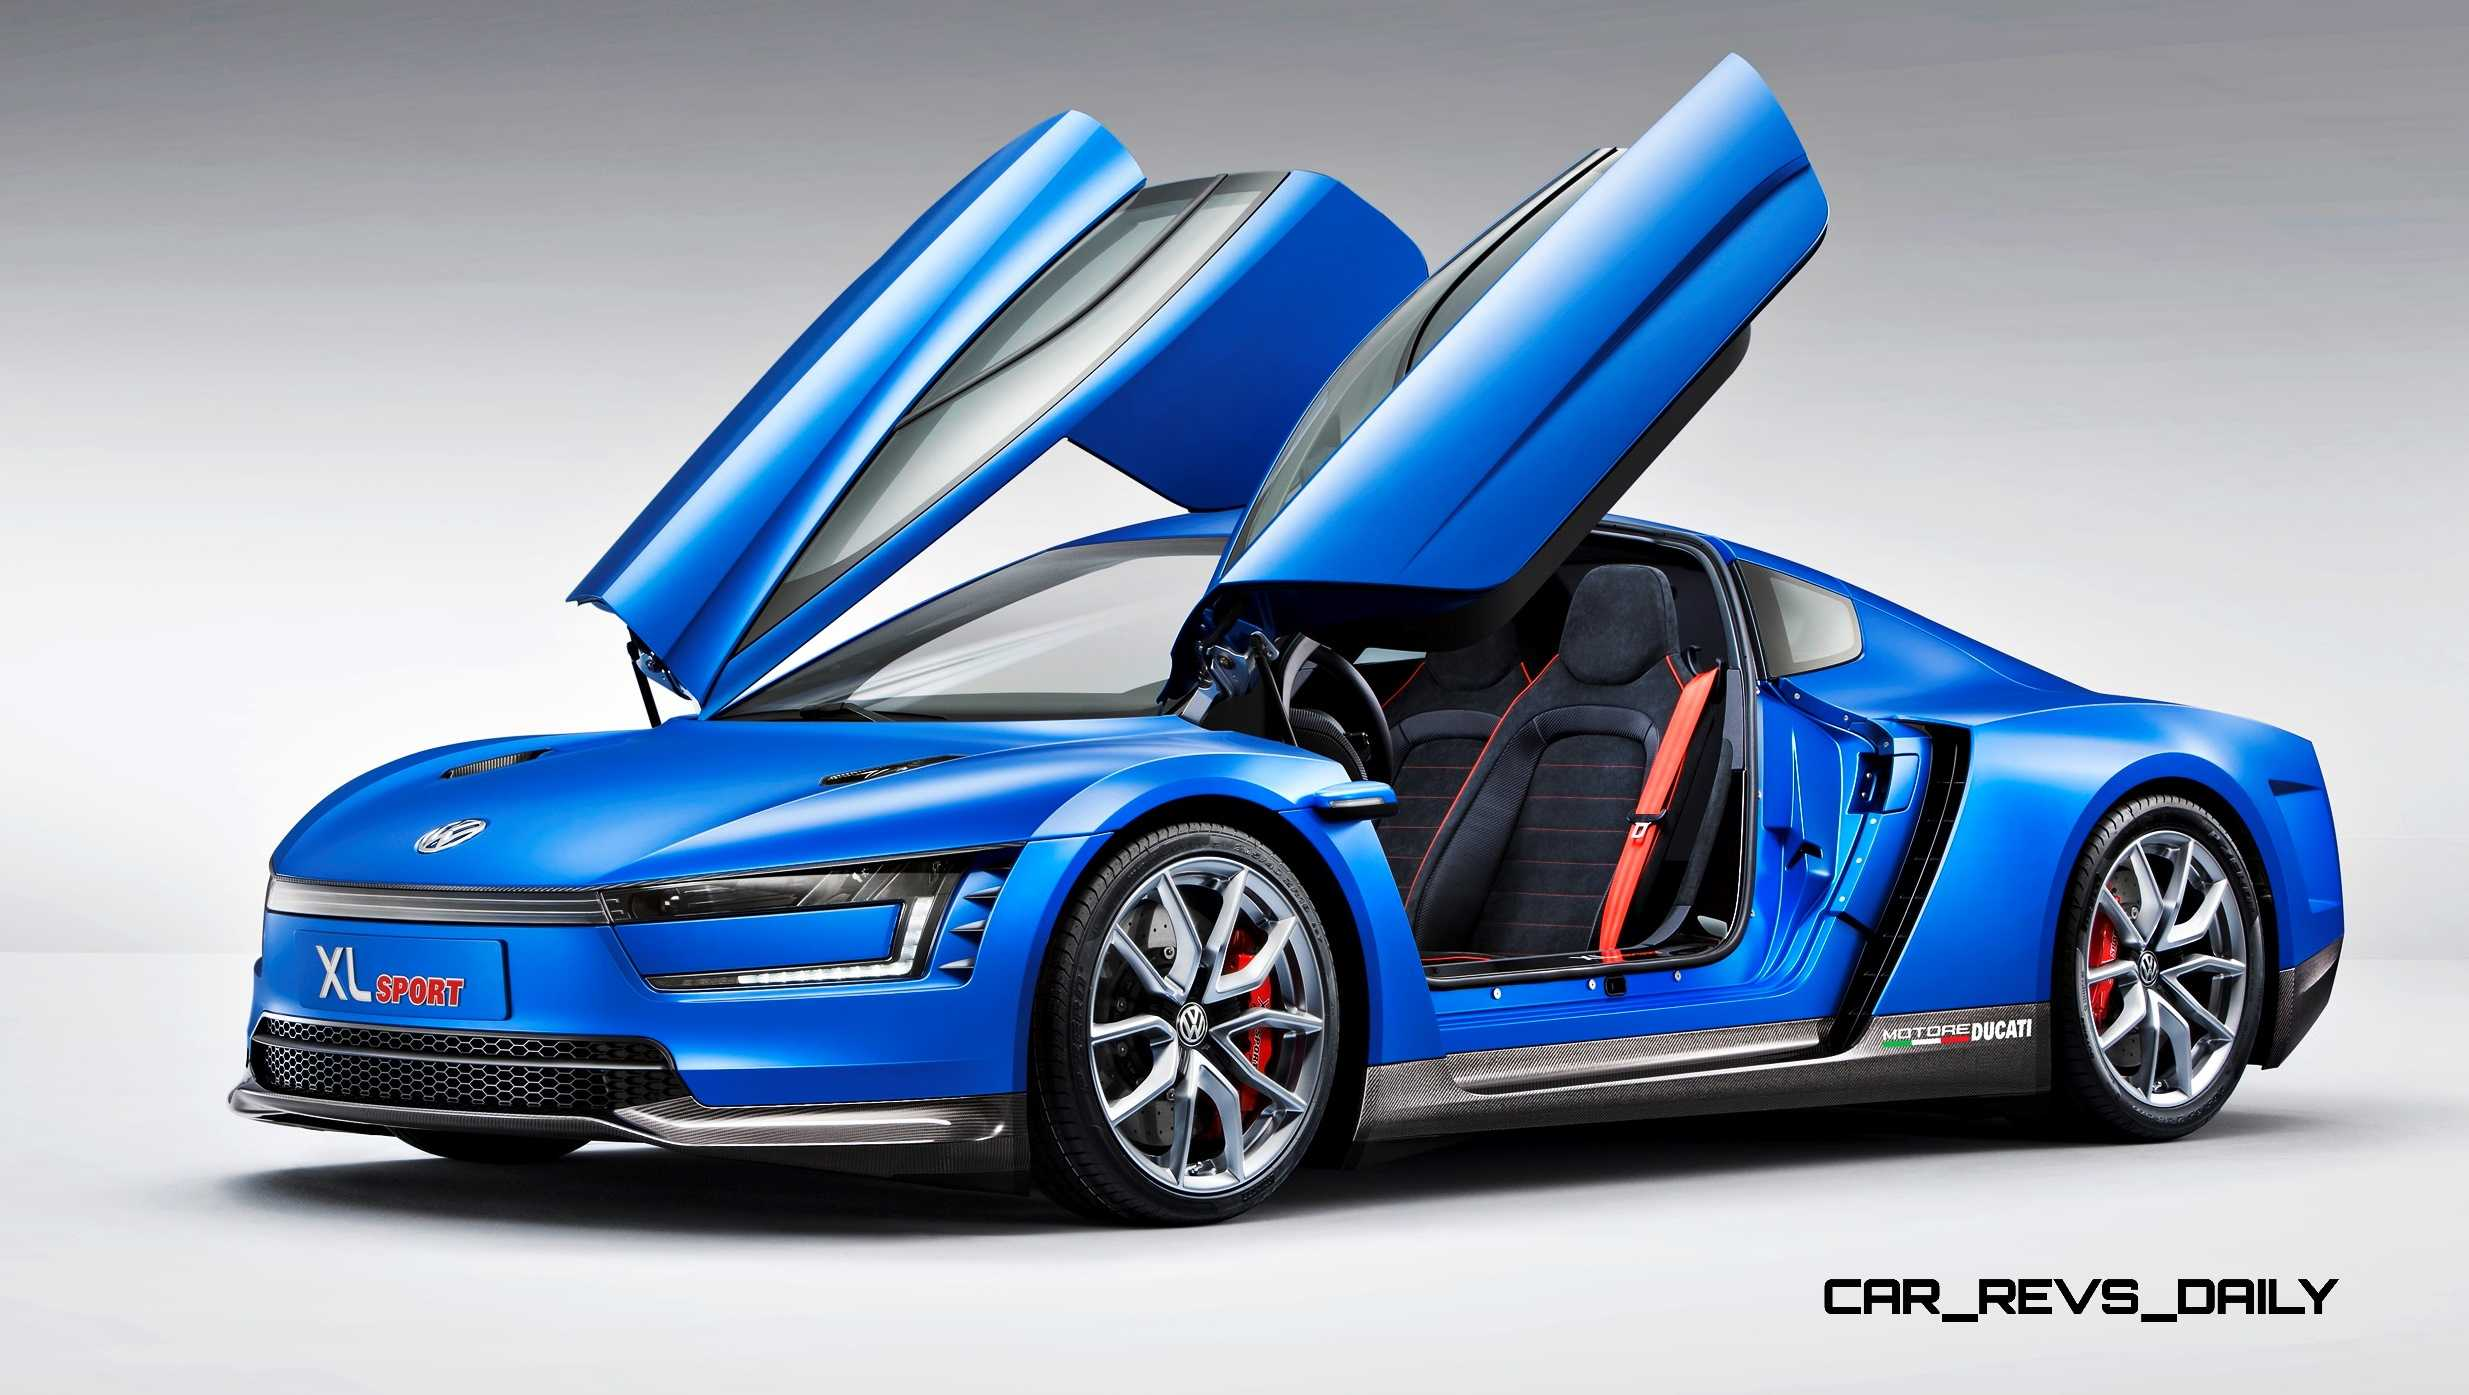 BMW I8 Mpg >> 2014 Volkswagen XL Sport Concept Makes One Seriously Sexy ...